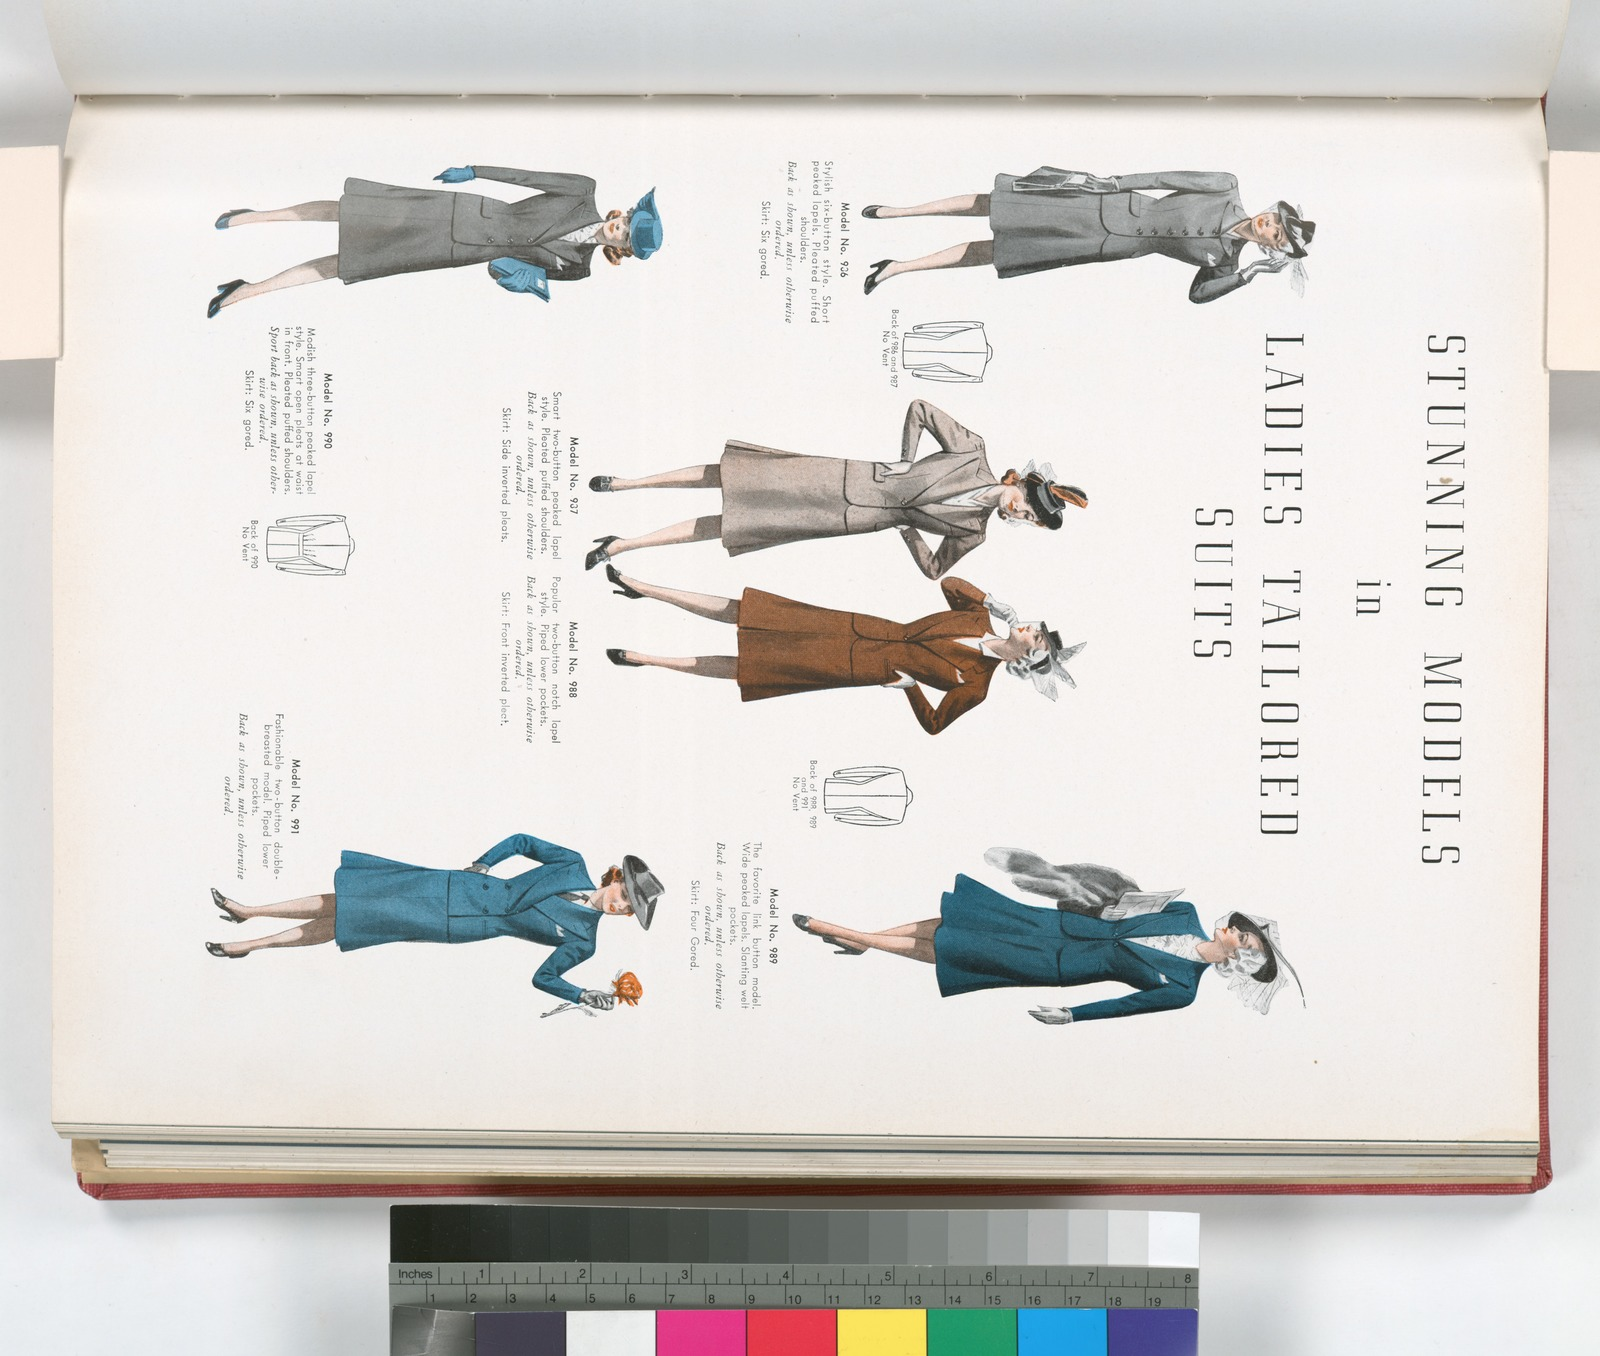 Ladies tailored suits - six button style, short peaked lapels, pleated puffed shoulders, two-button peaked lapel style, two-button notch lapel style, piped lower pockets, link button model, wide peaked lapels, welt pockets, three button peaked lapel style, open pleats at waist in front, two-button double-breasted model.